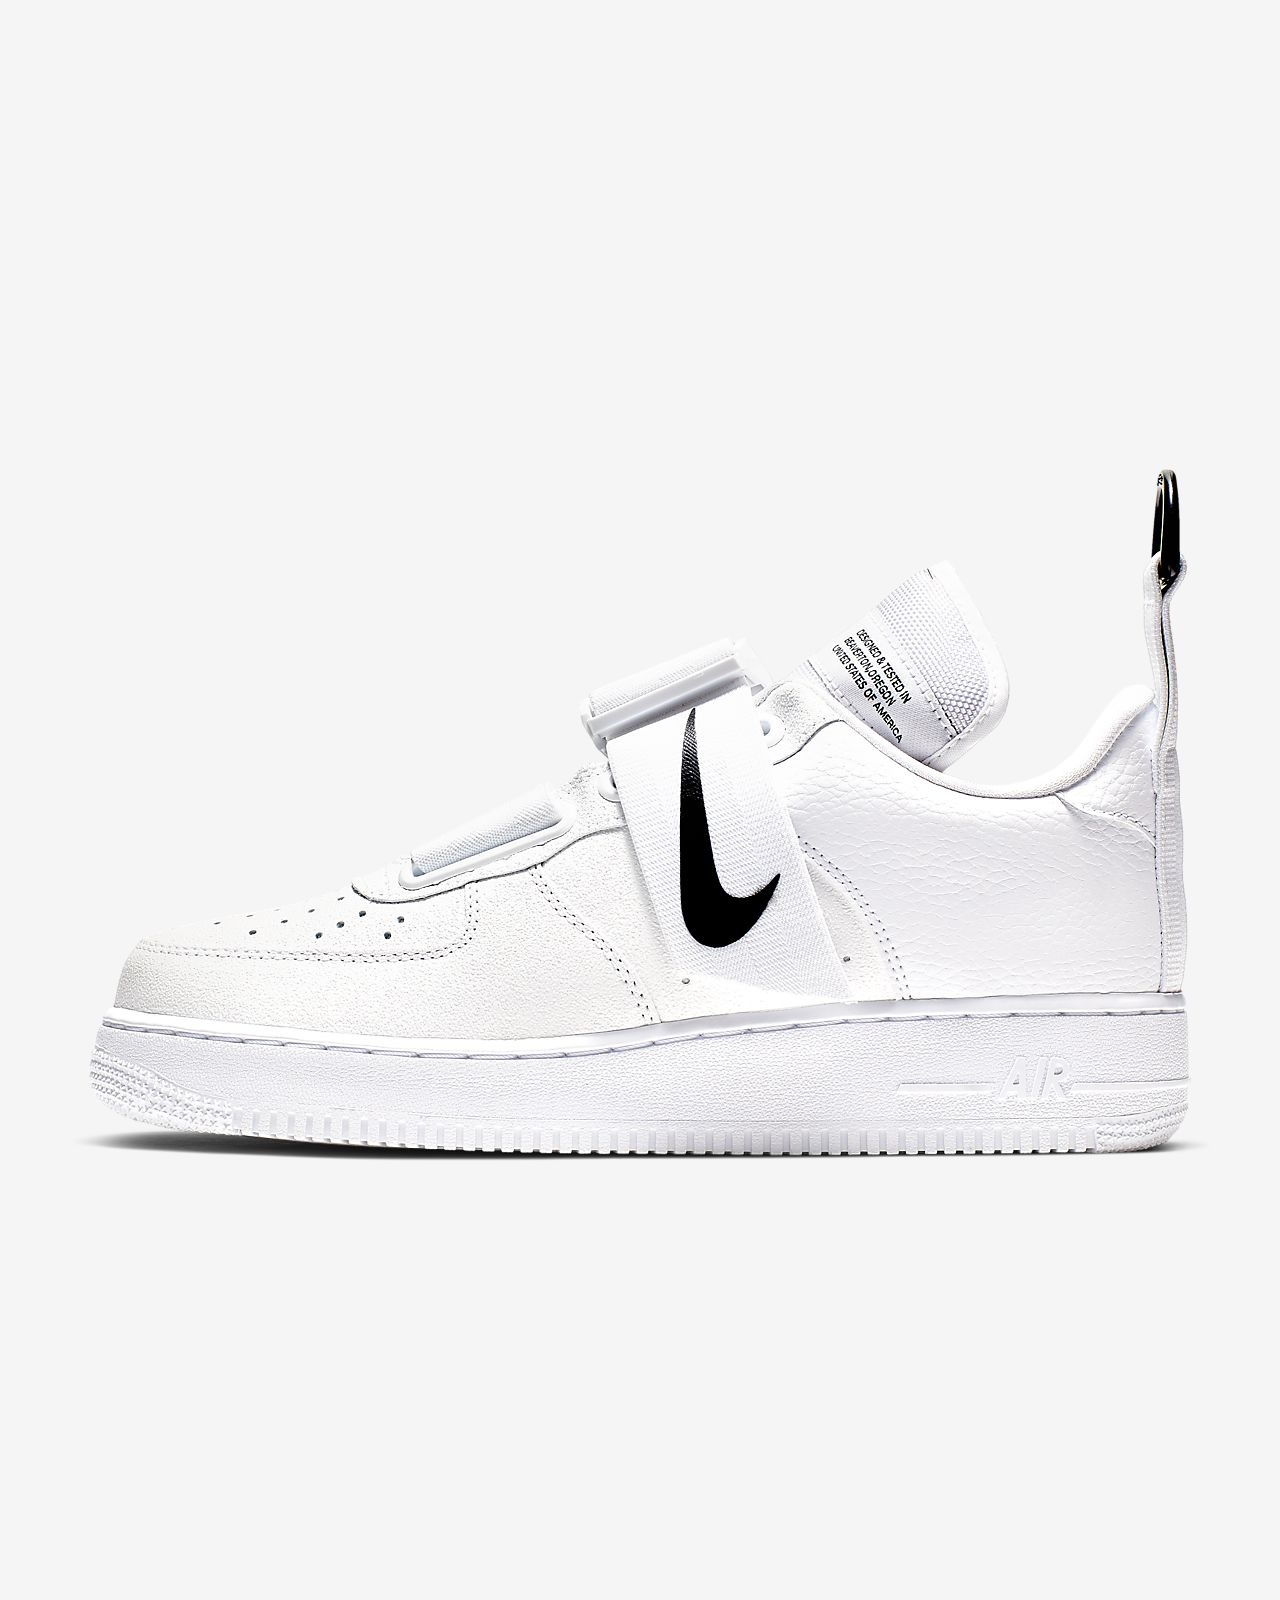 8e5a7fb75d6 Nike Air Force 1 Utility Men's Shoe. Nike.com